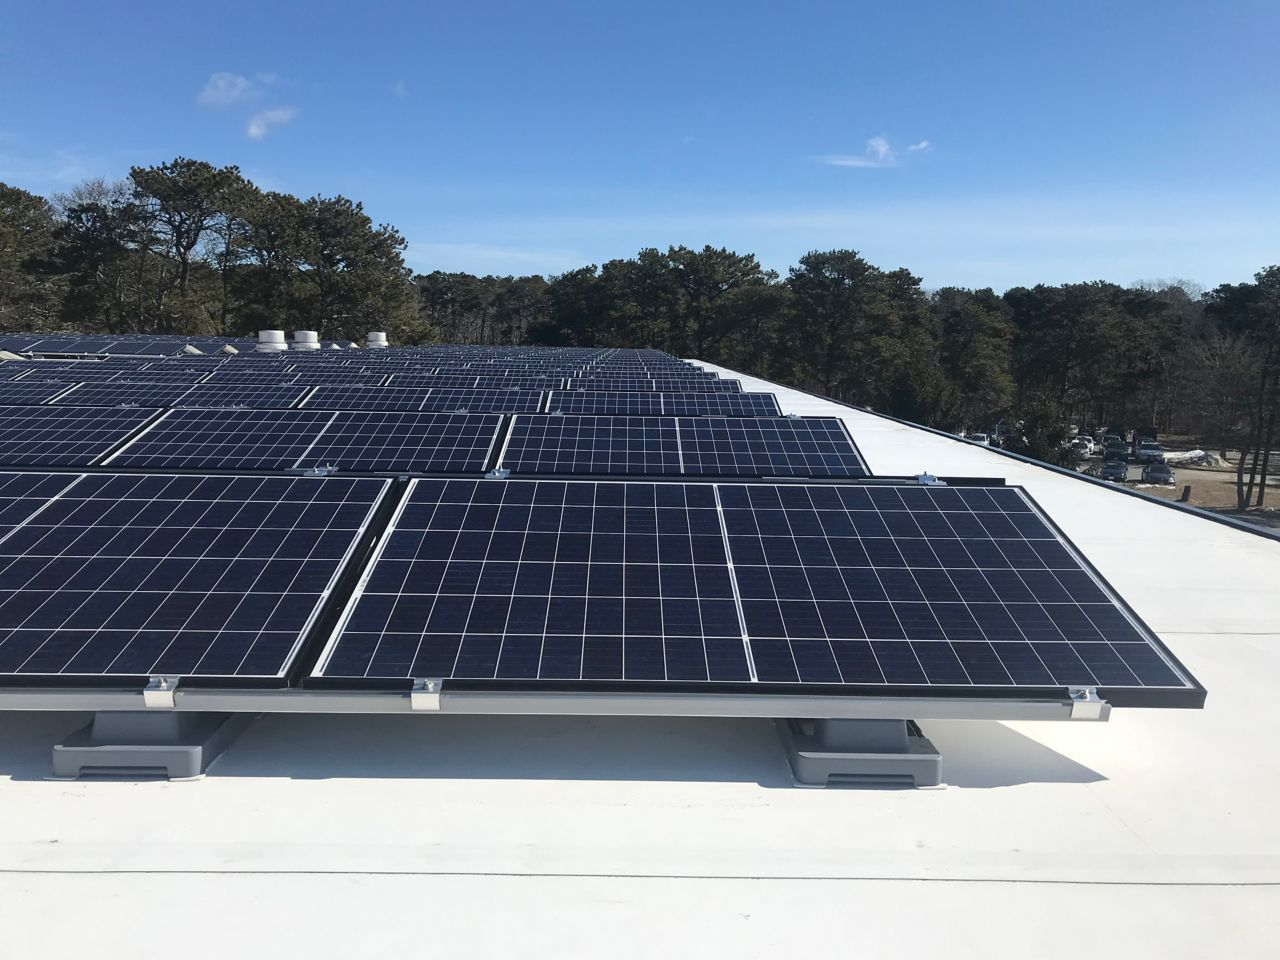 Sika SolarMount-1 on solar roof installed in south configuration in Nauset